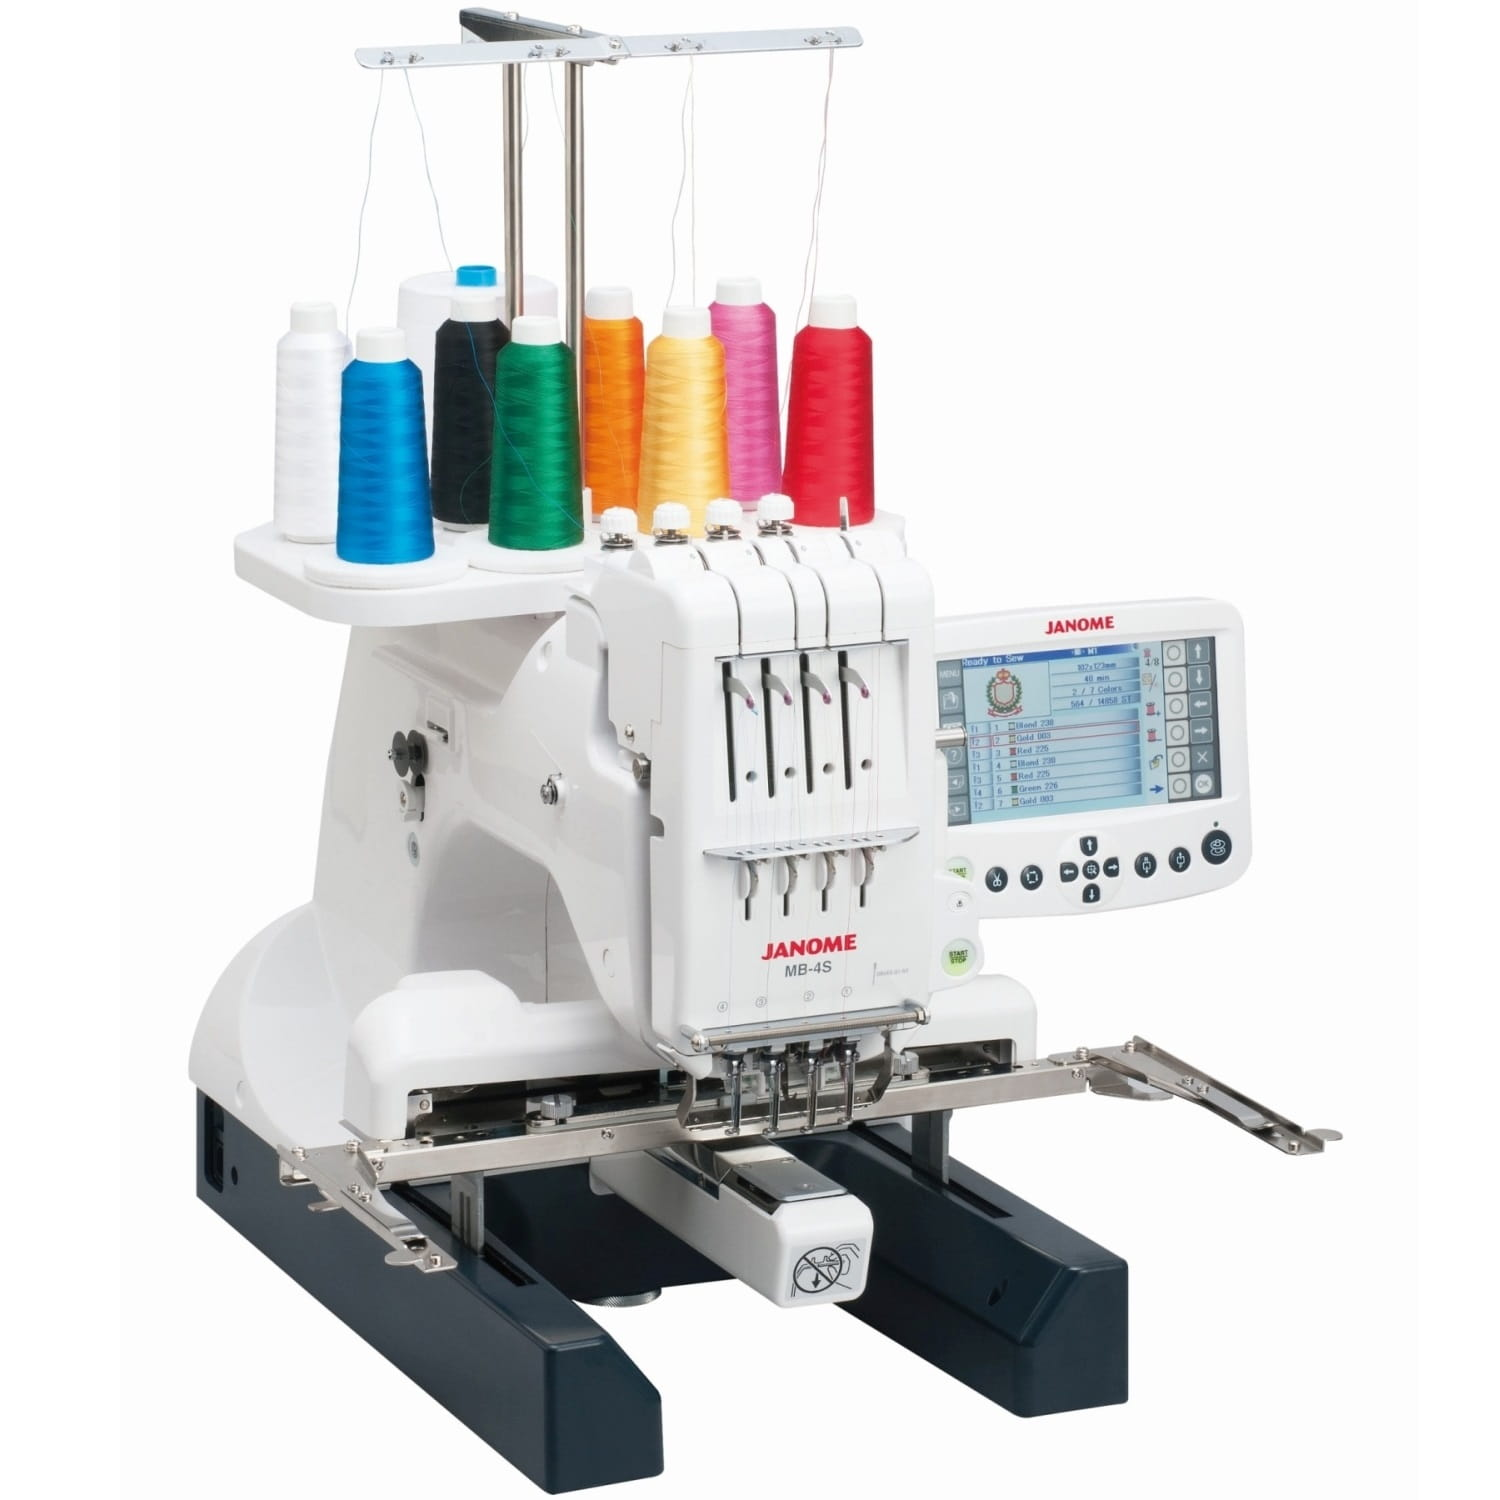 Release janome mb 7 embroidery machine woodrow handcrafts